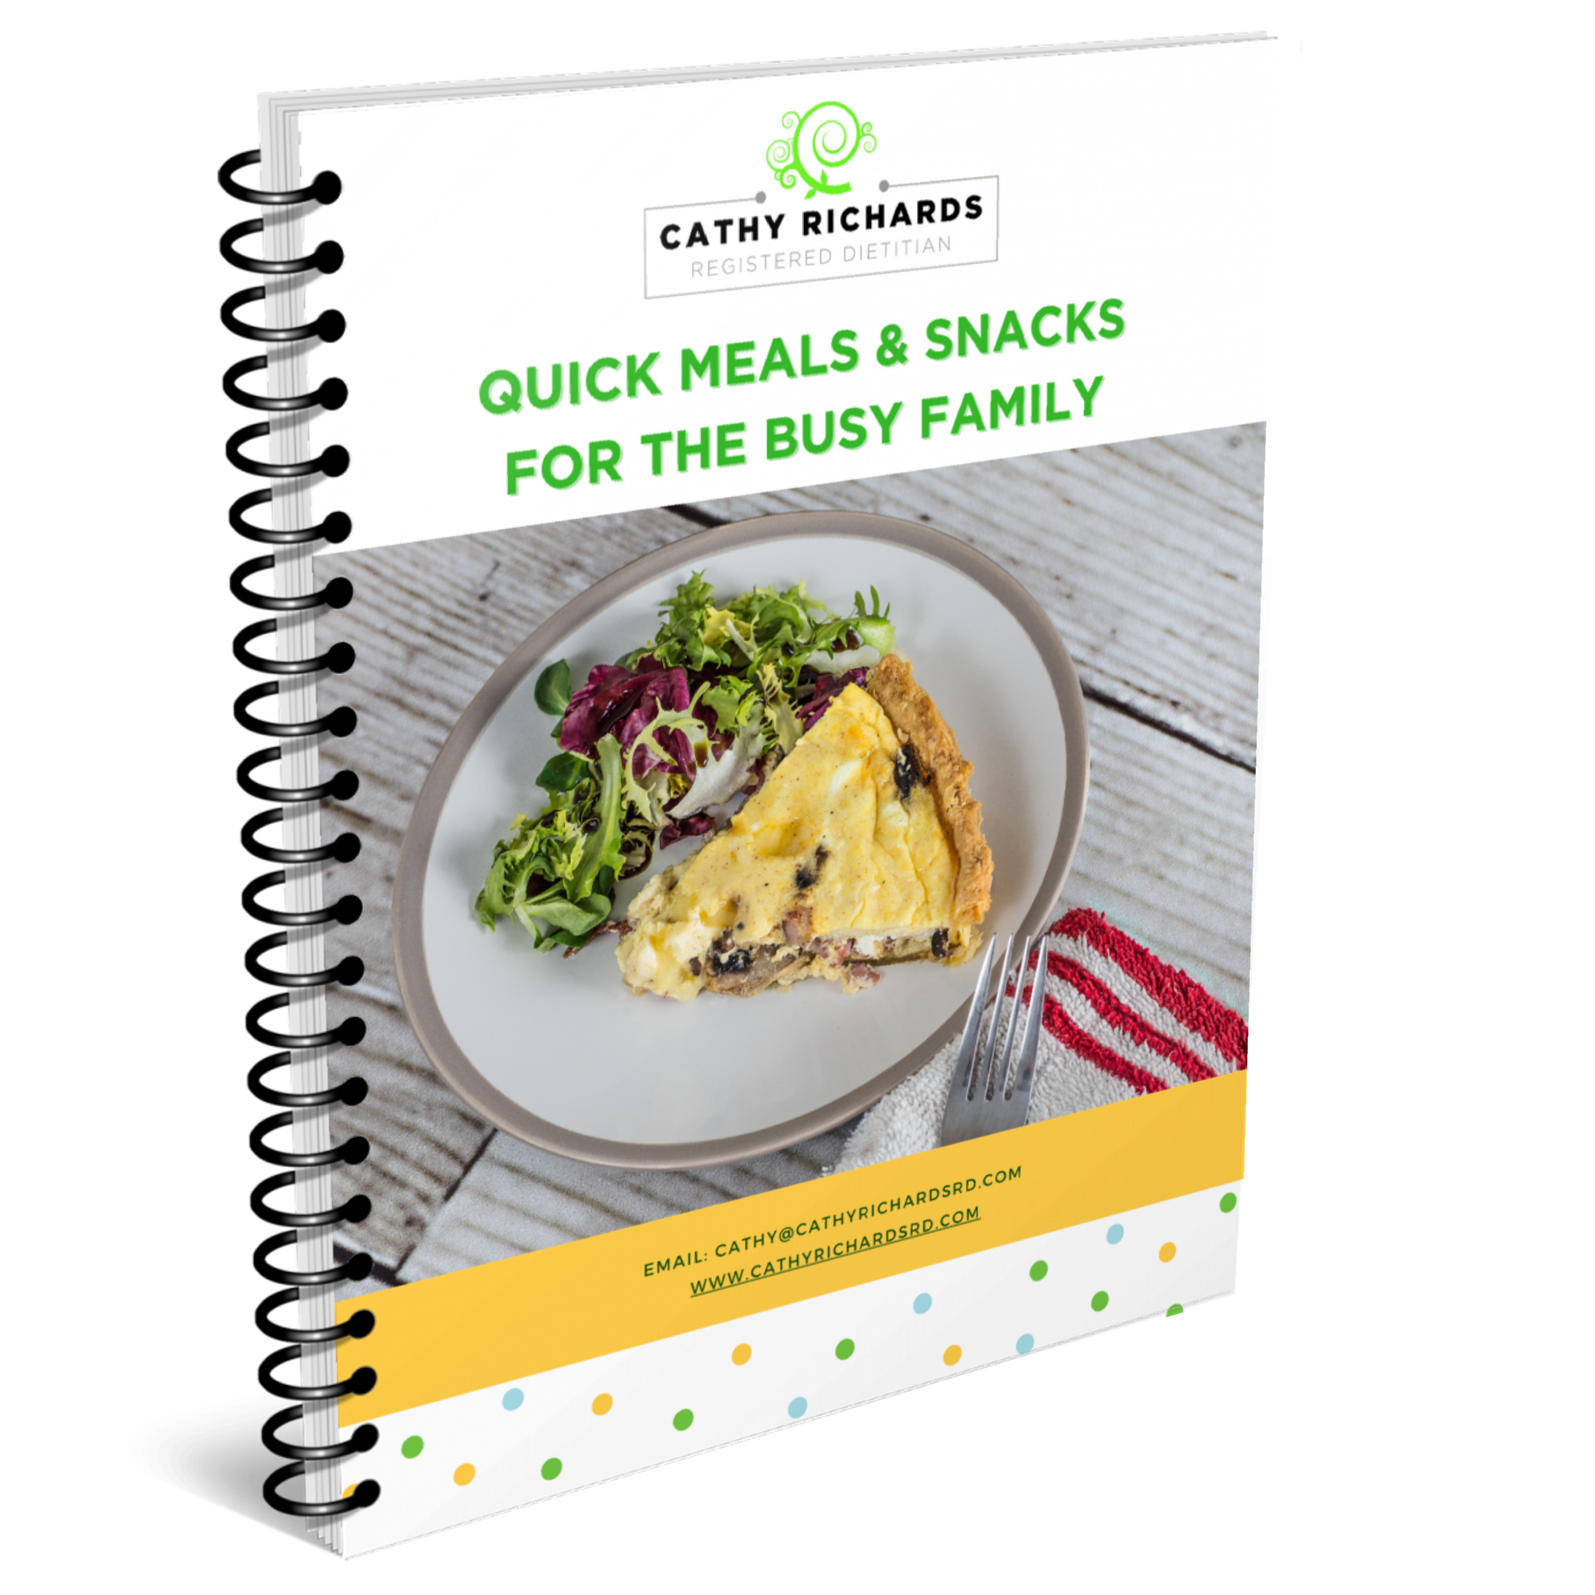 Quick & Easy Meals for the Busy Family Cathyrichardsrd.com